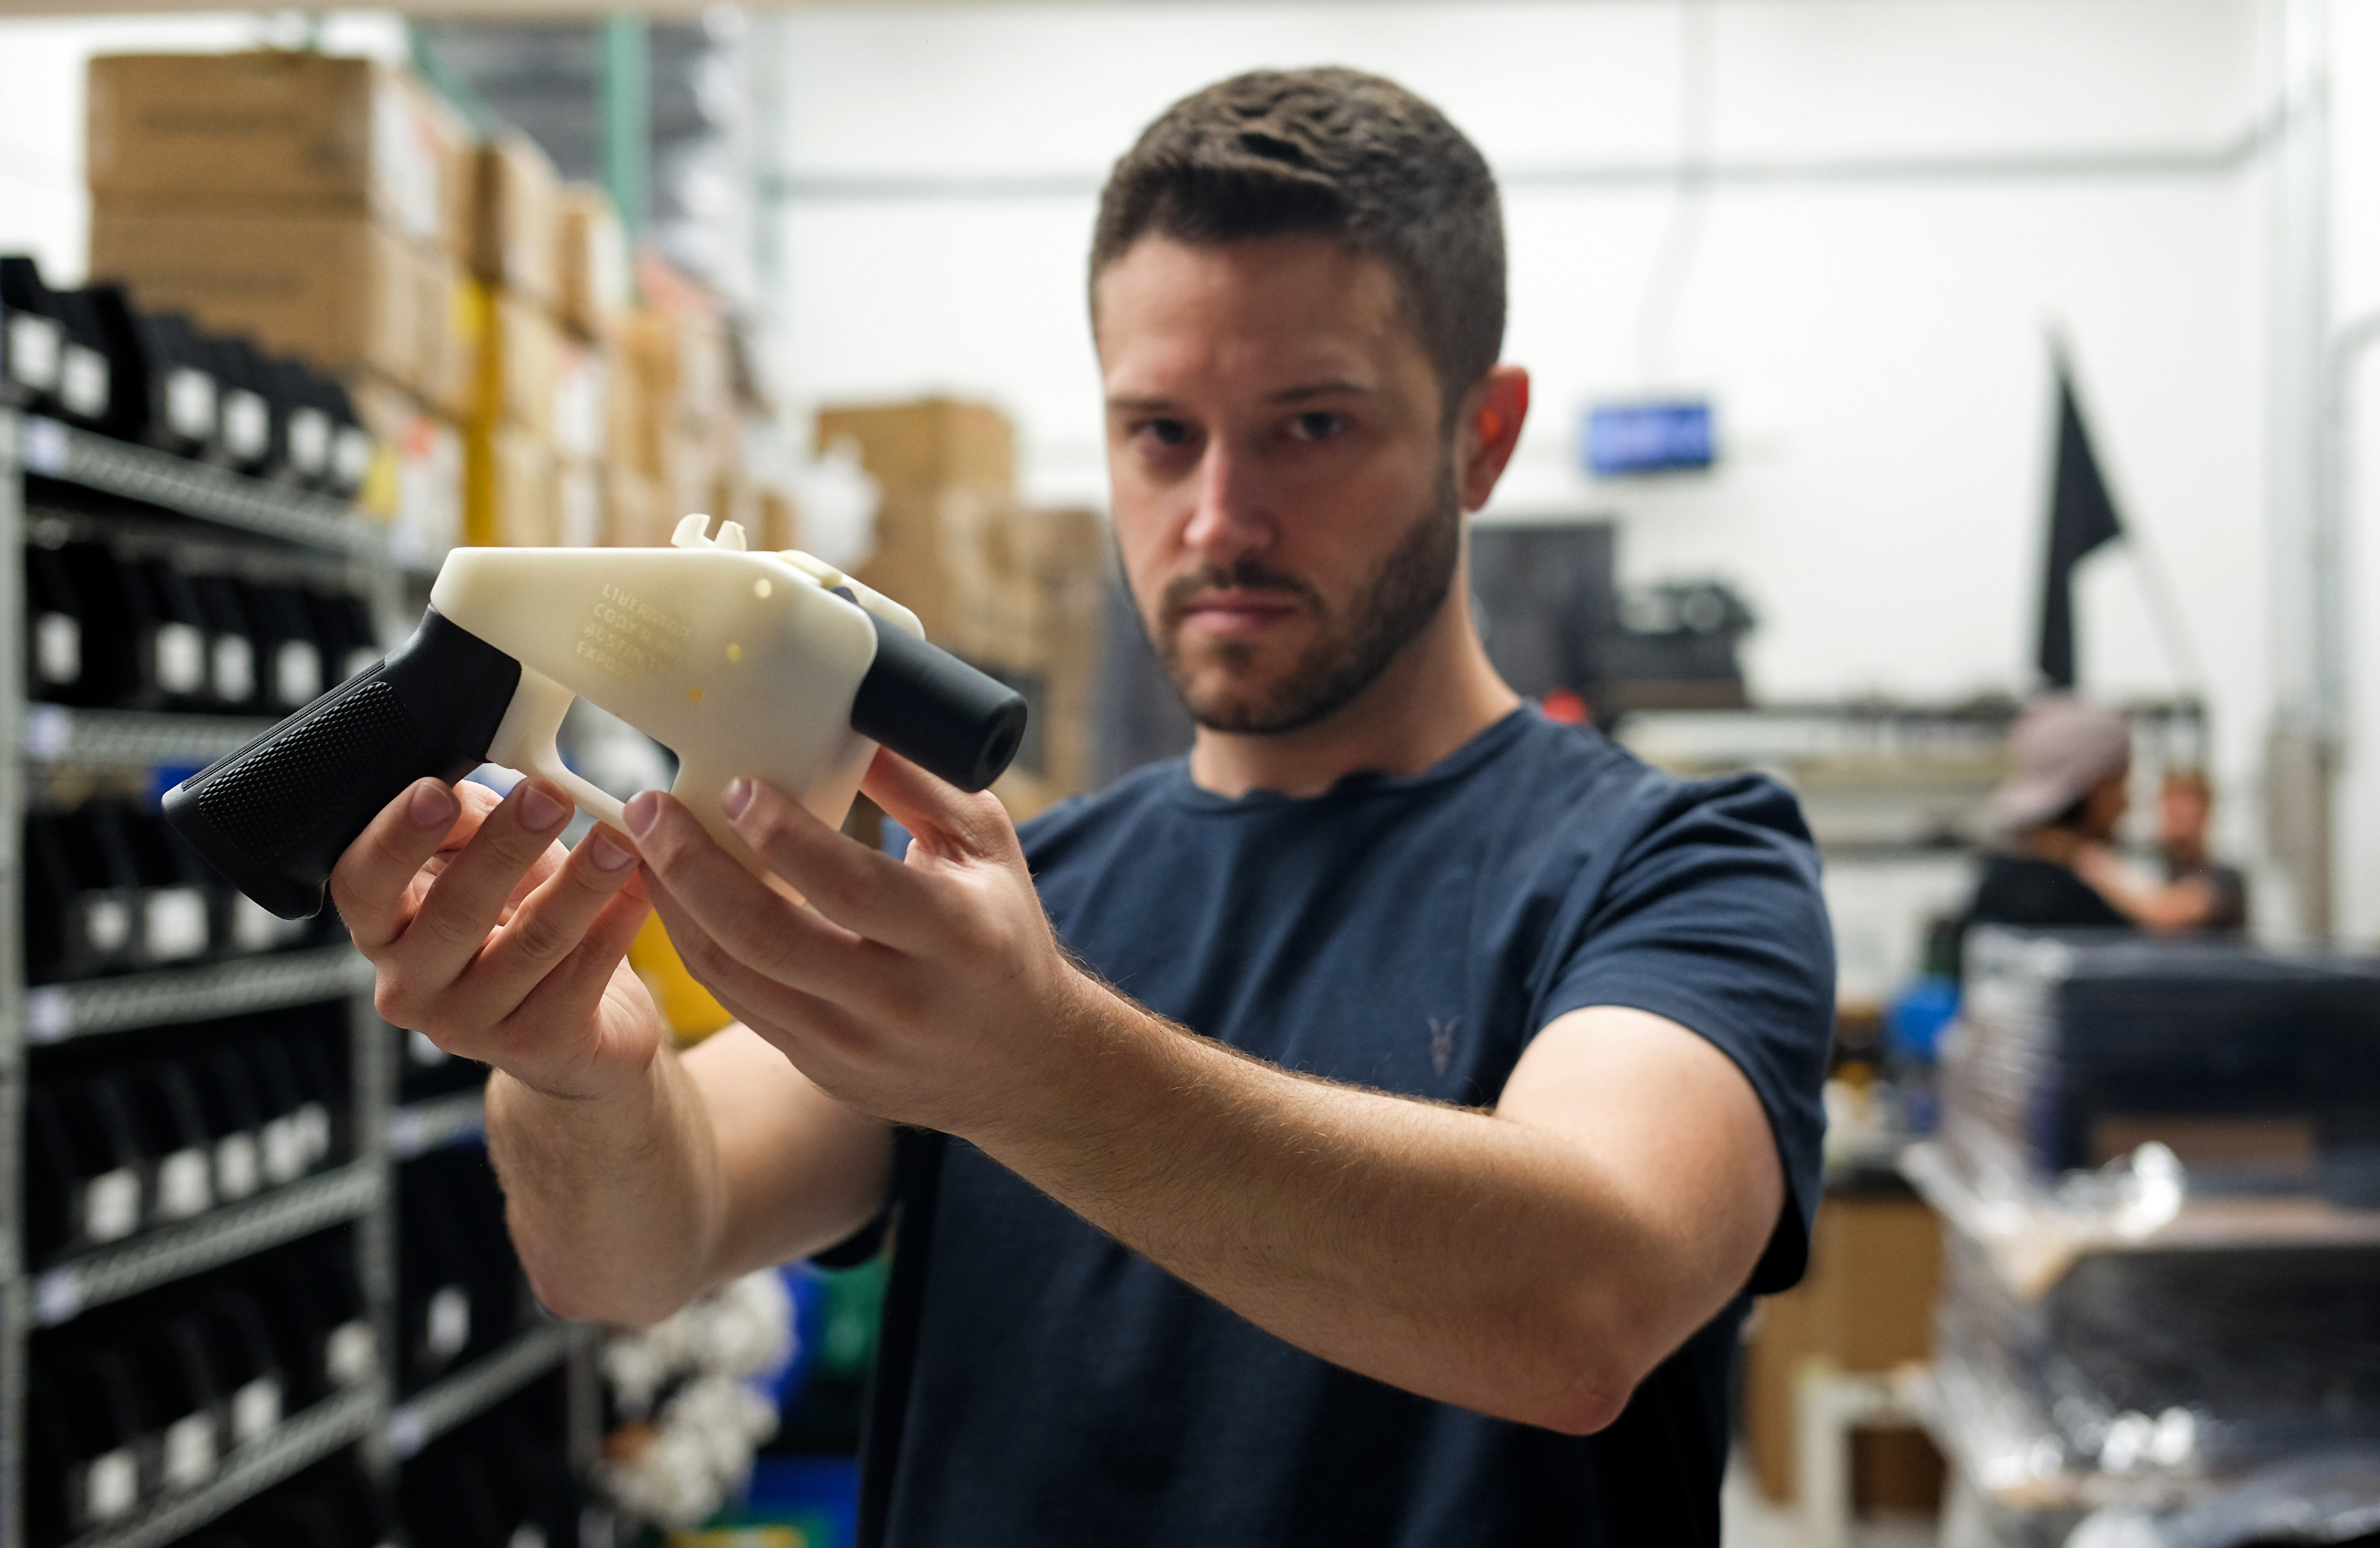 talkingpointsmemo.com - Allegra Kirkland - Founder Of 3D-Printed Gun Company Charged With Sexual Assault Of Child